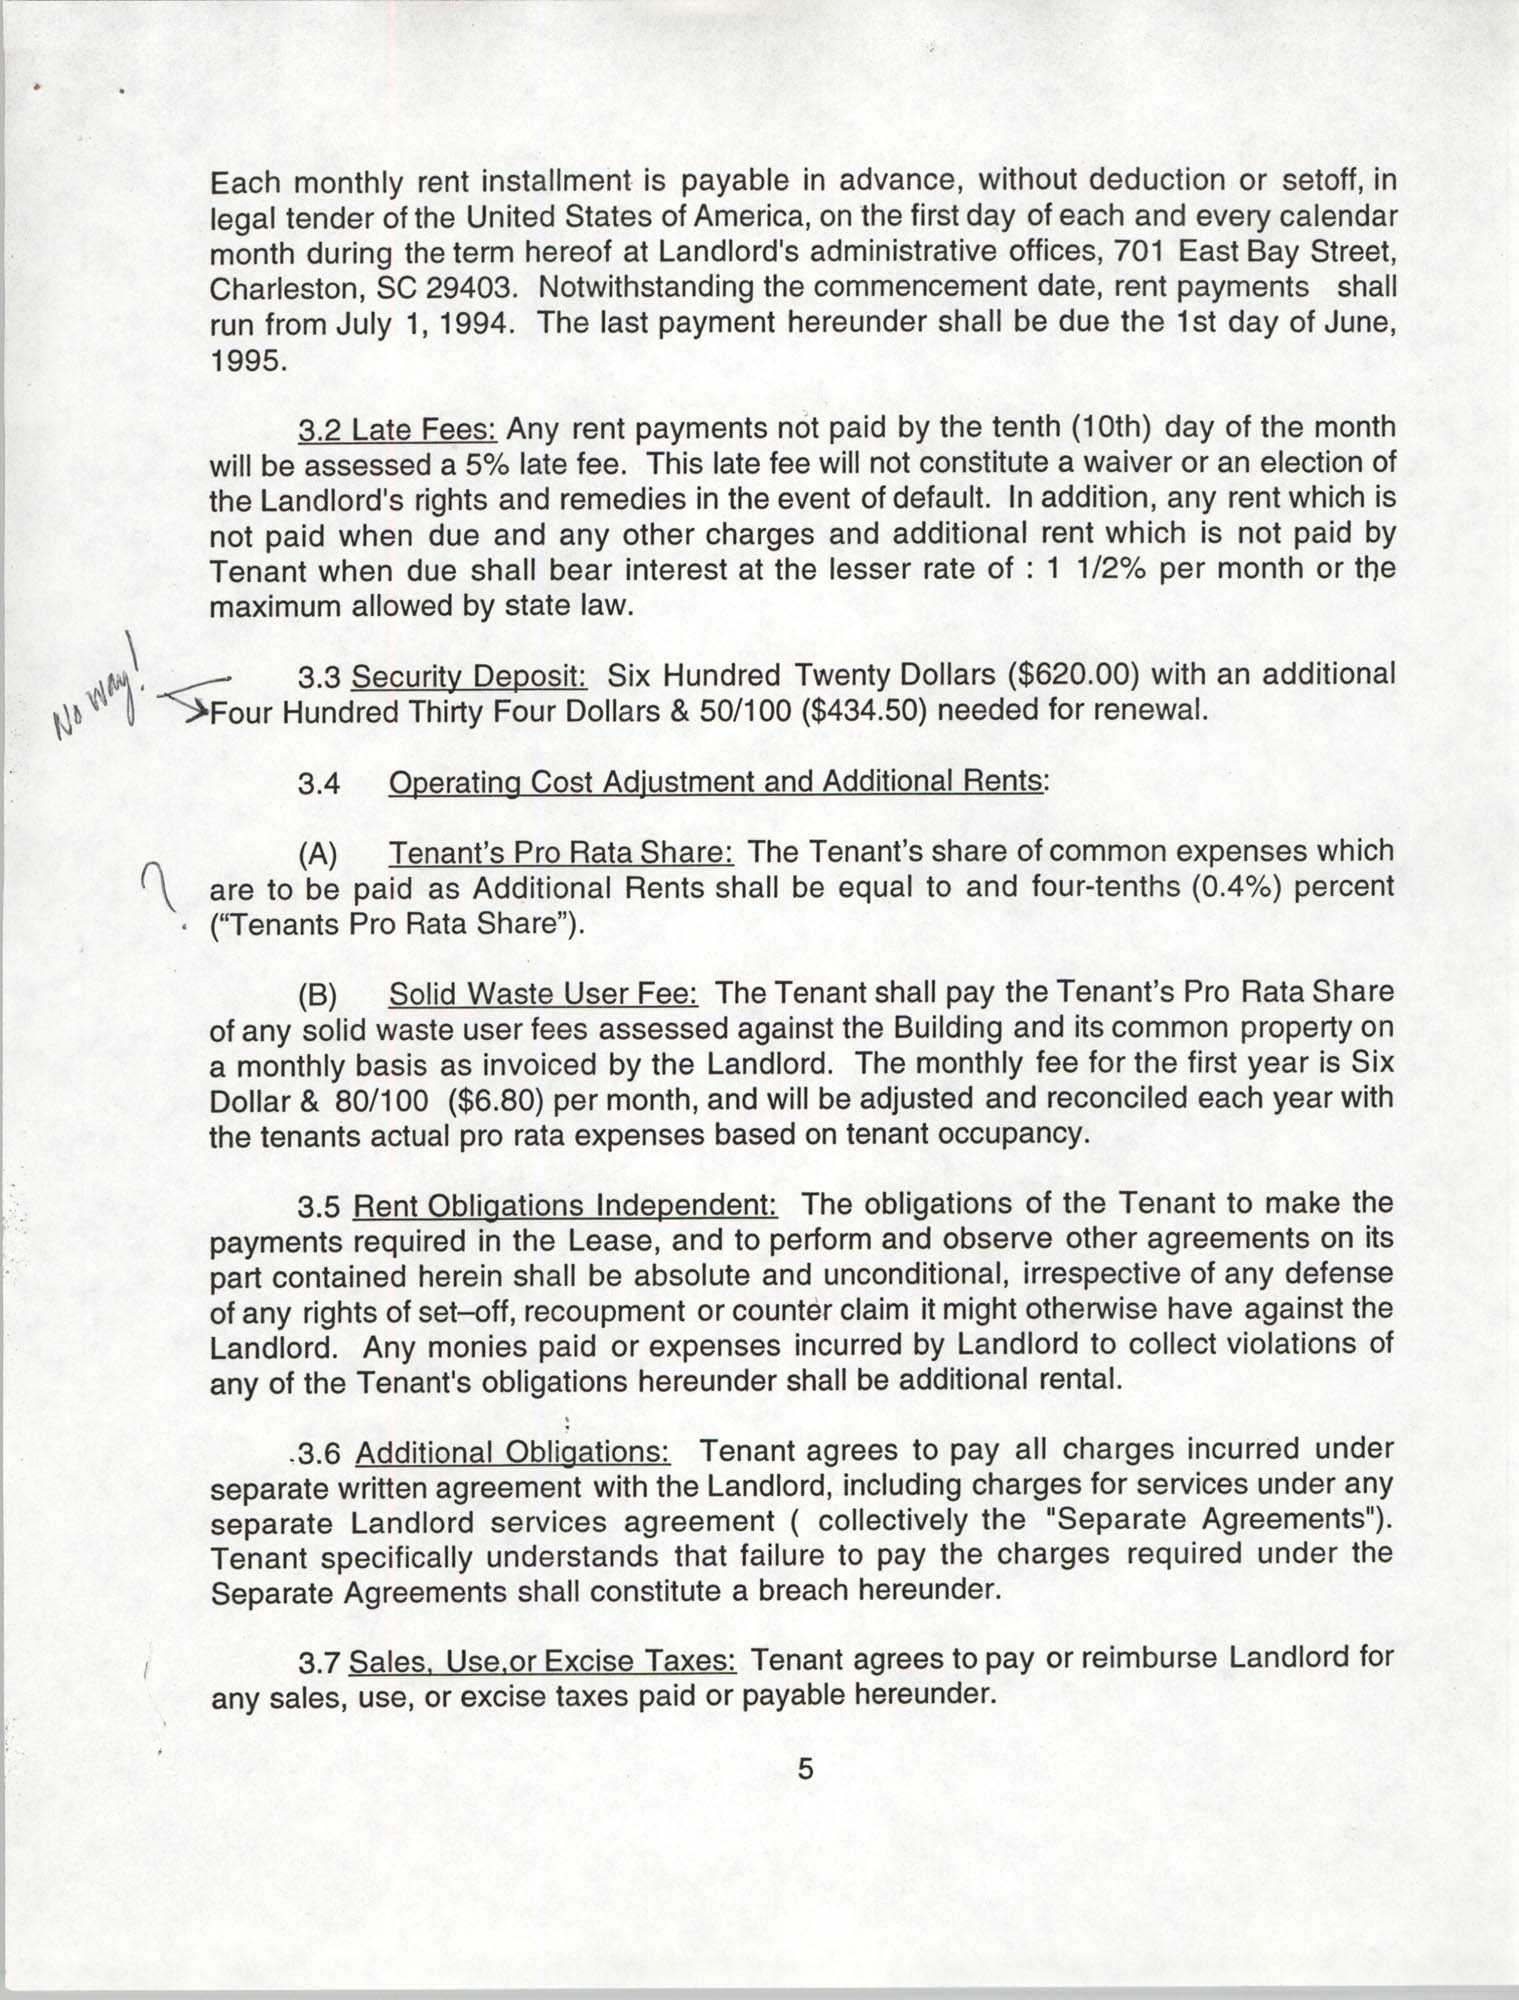 Charleston Branch of the NAACP Leasing Agreement, July 1994 to June 1995, Page 5